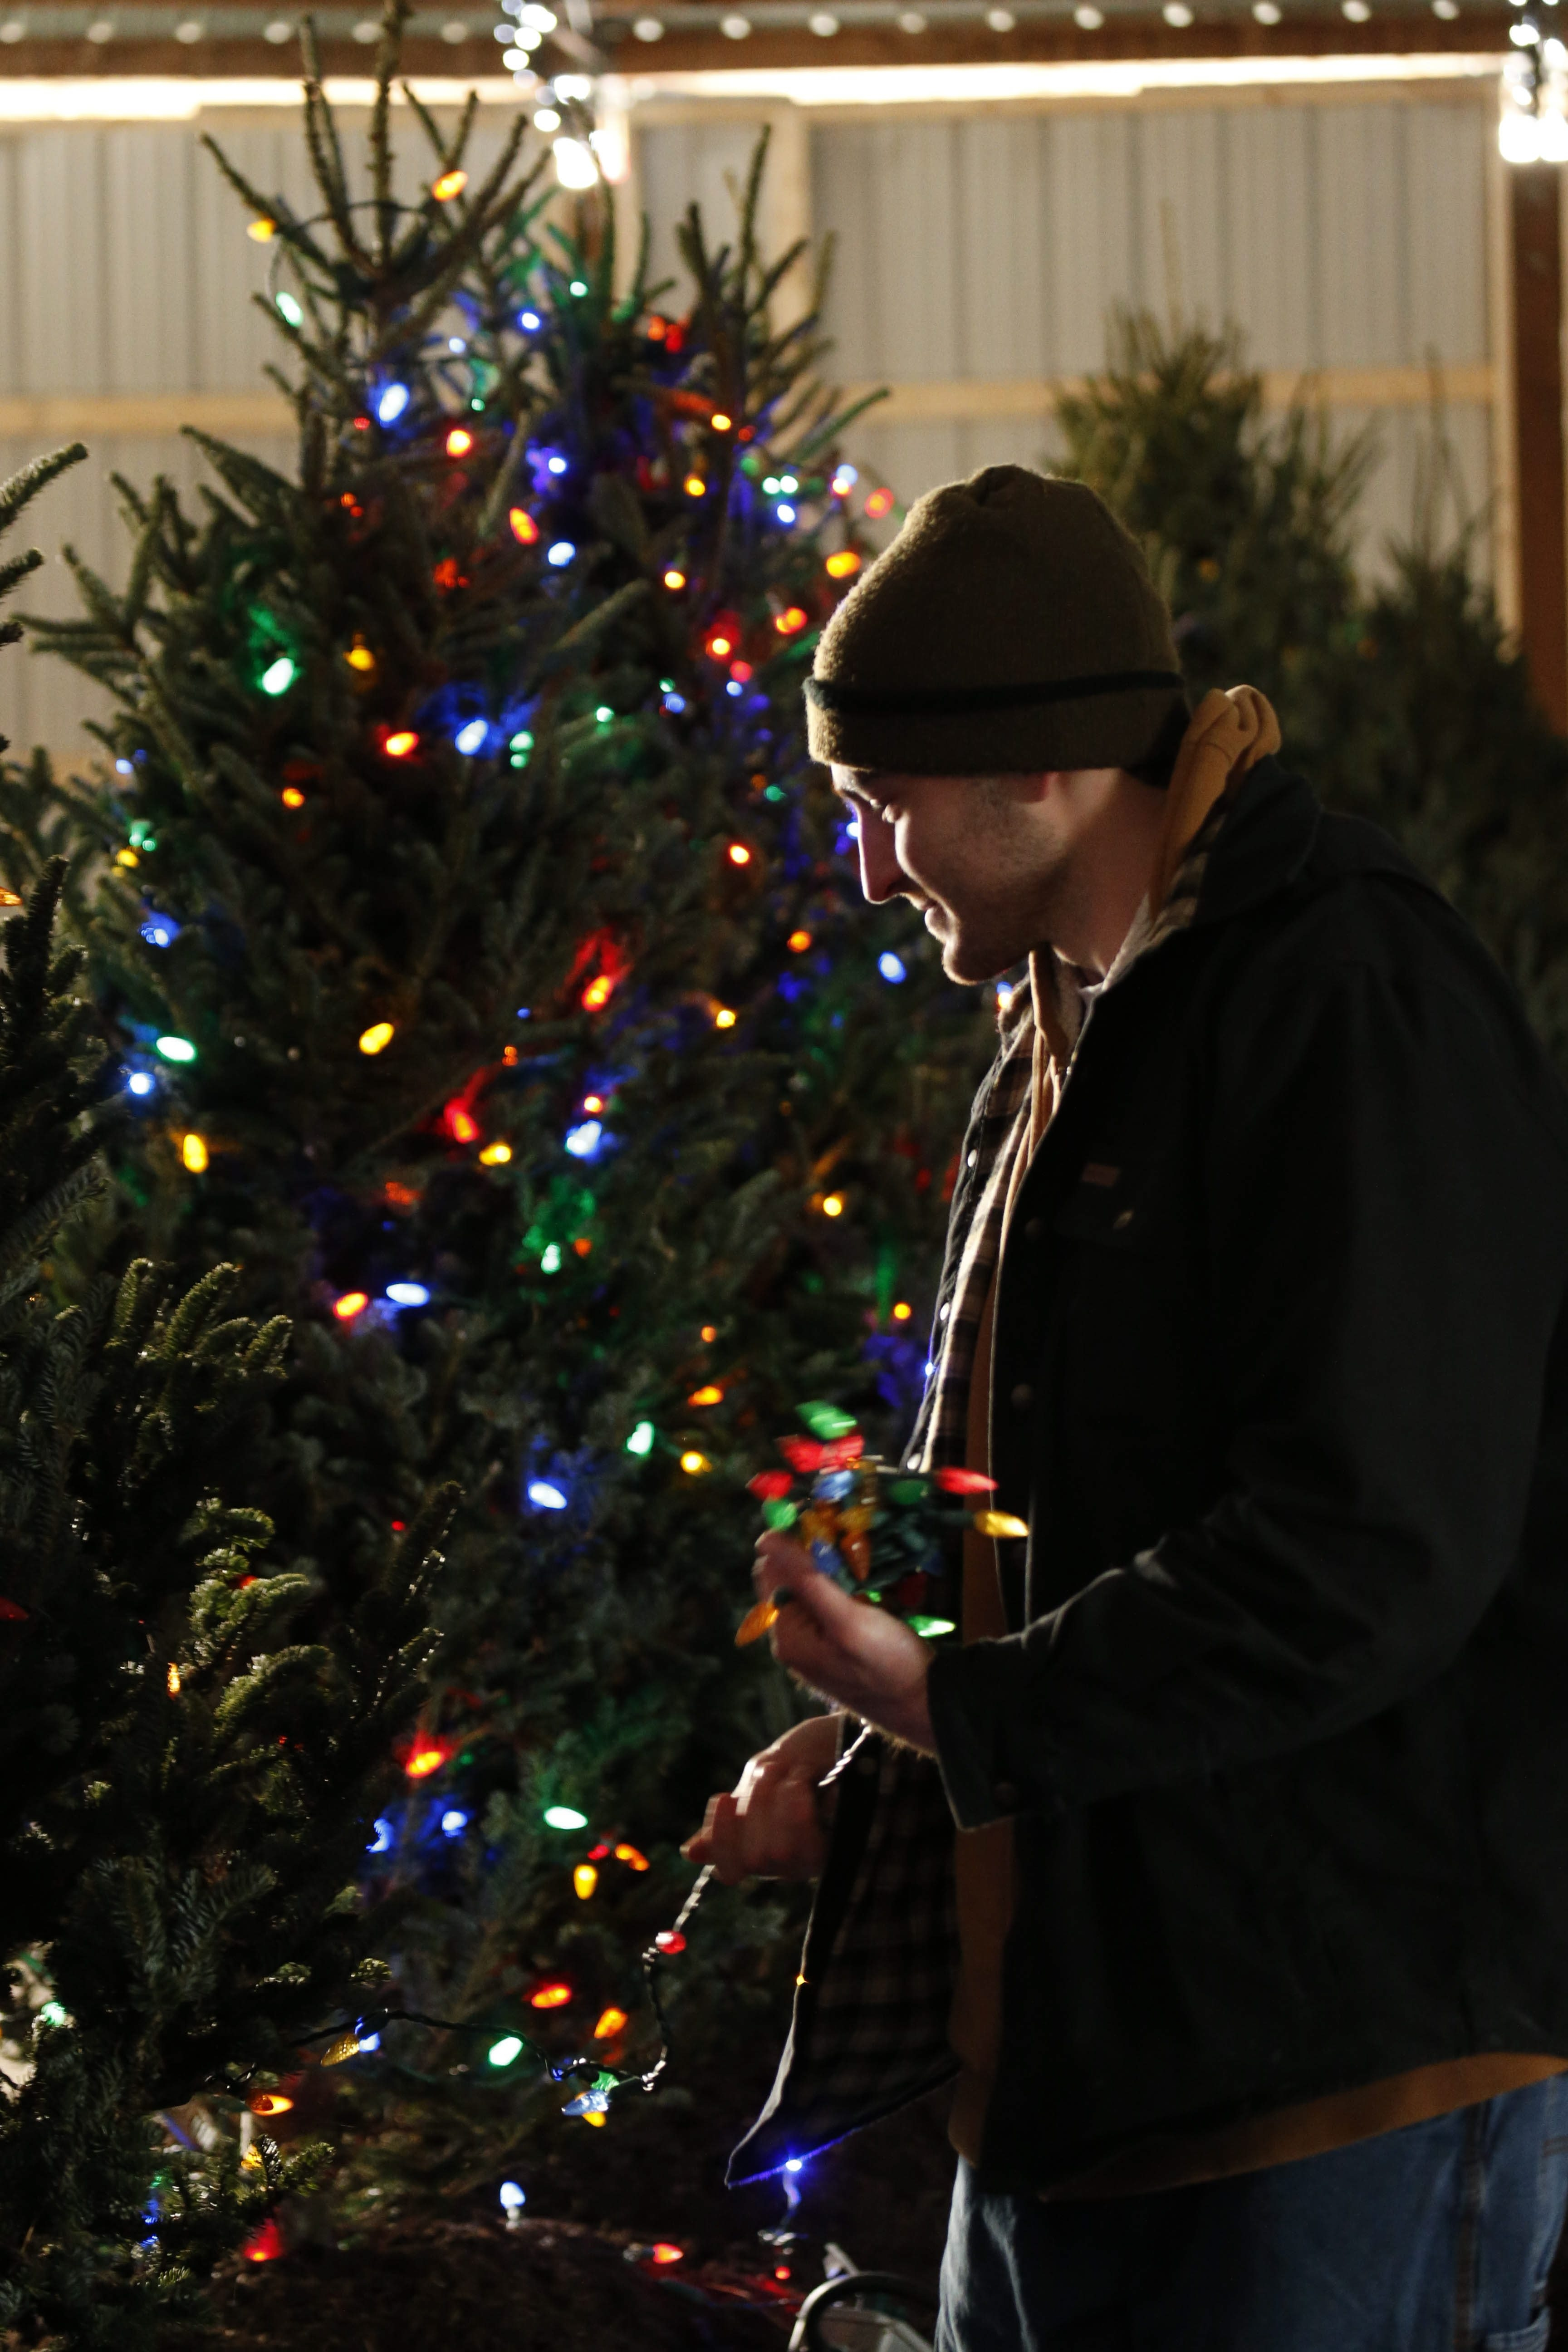 The Fairgrounds Festival of Lights brightens the holiday season from 5 to 9 p.m. Saturday and Sunday at the Hamburg Fairgrounds.